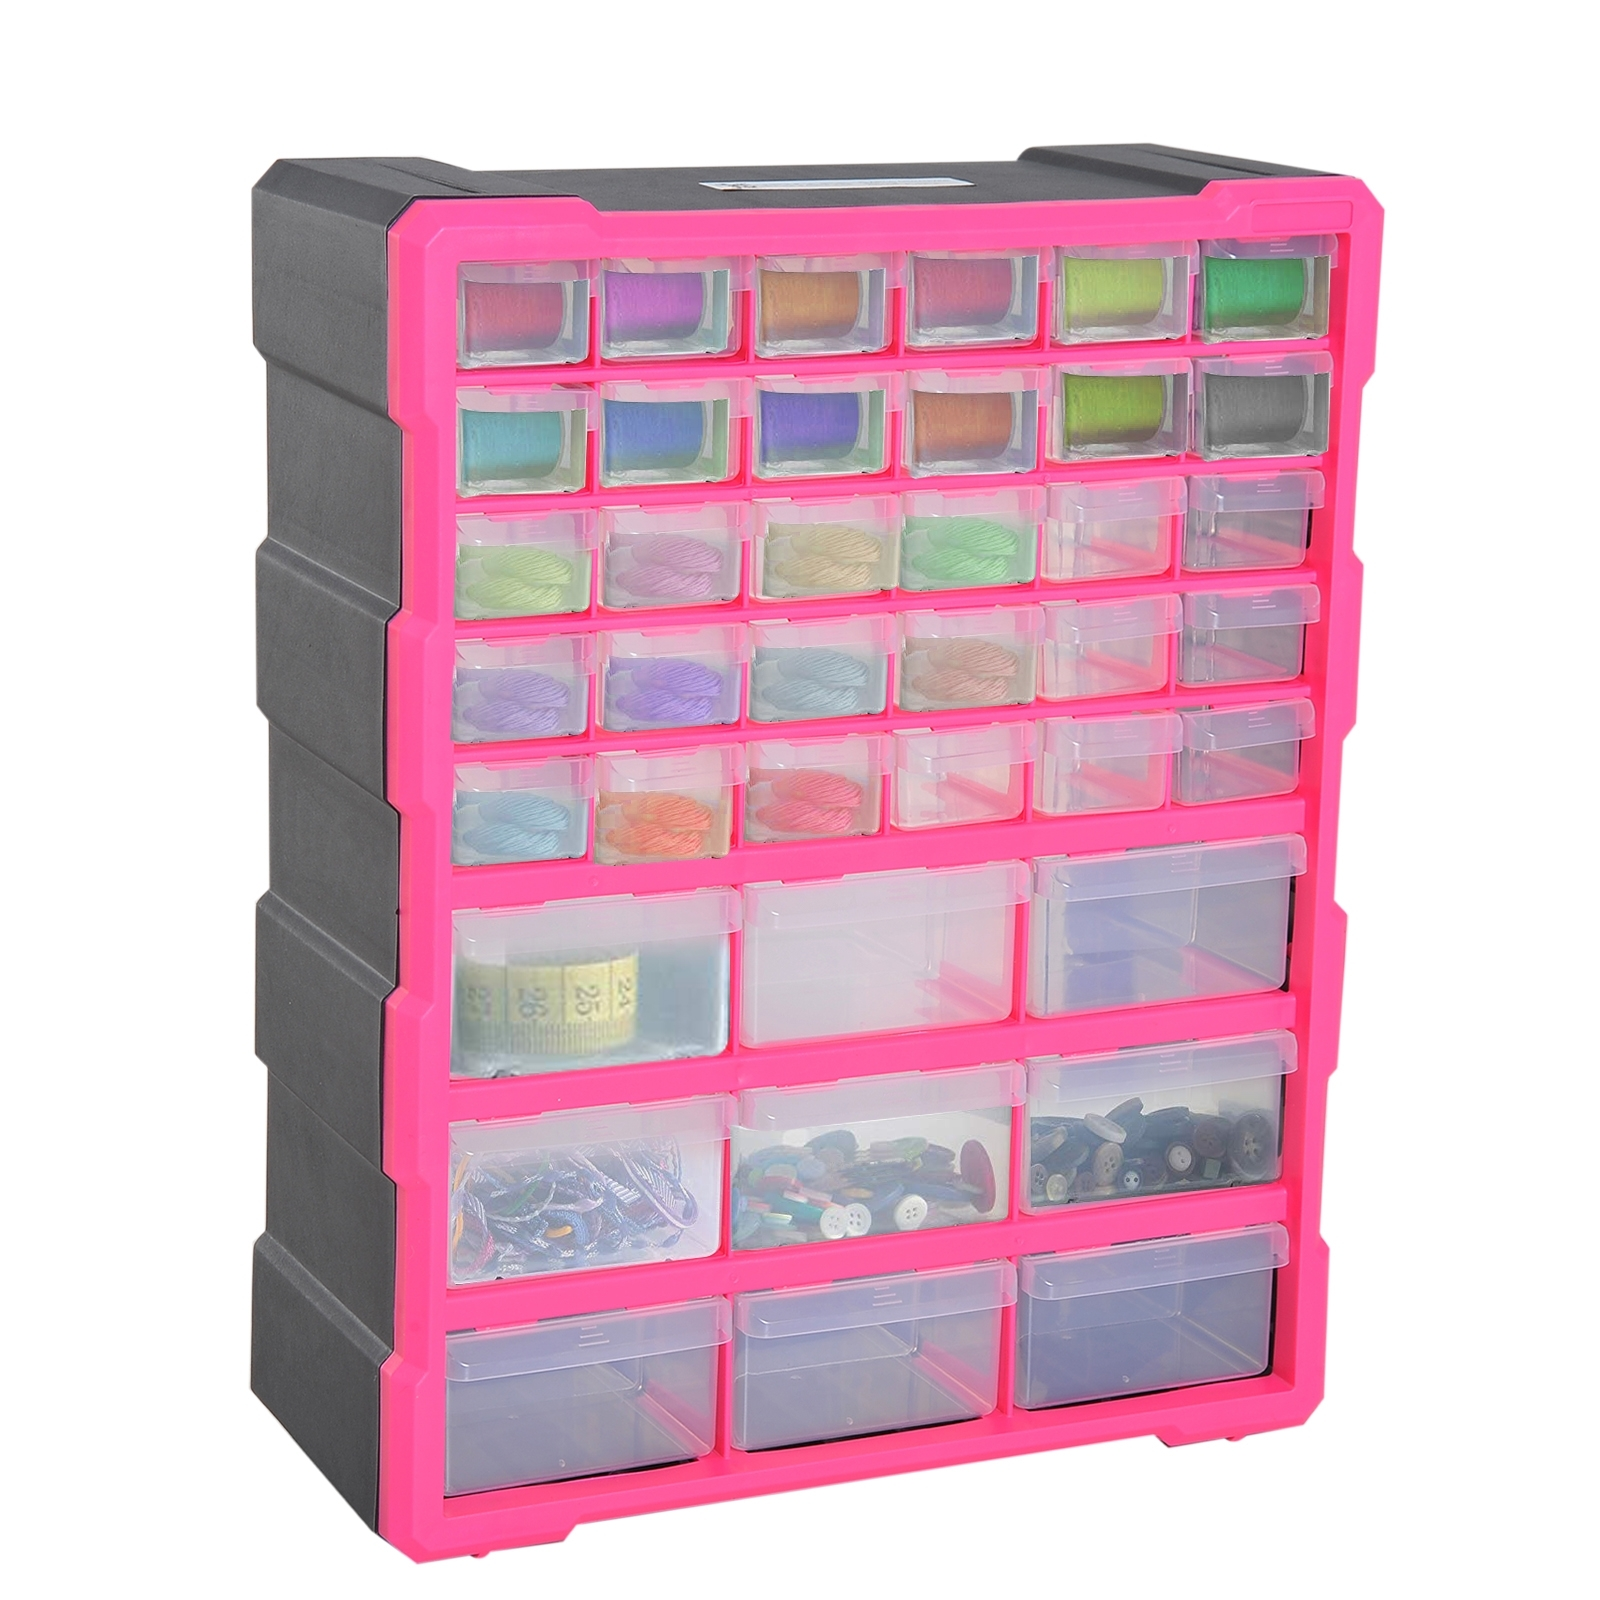 Image of €35,35 DURHAND Casier de Rangement avec 39 Compartiments/Tiroirs Transparents Polypropylène 38 x 16 48 cm Rose Rouge / Homcom Module 38L 16l 48H tiroirs Transparent Noir B40-019 3662970041727